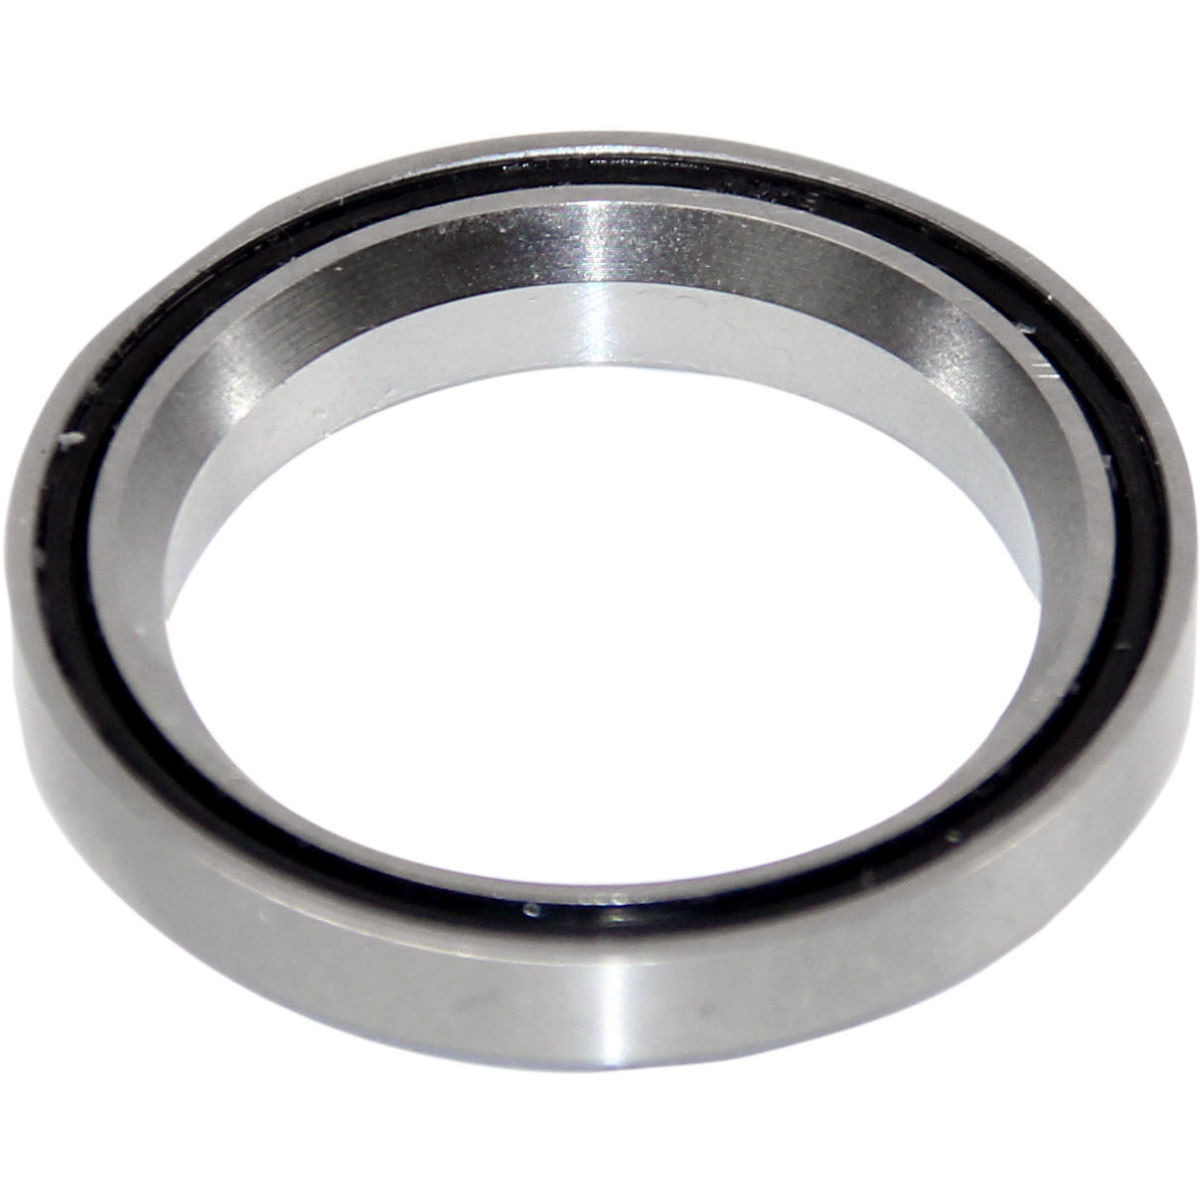 Hope Replacement 1 1/8 Headset Bearing - 1 1/8 Grey  Headsets